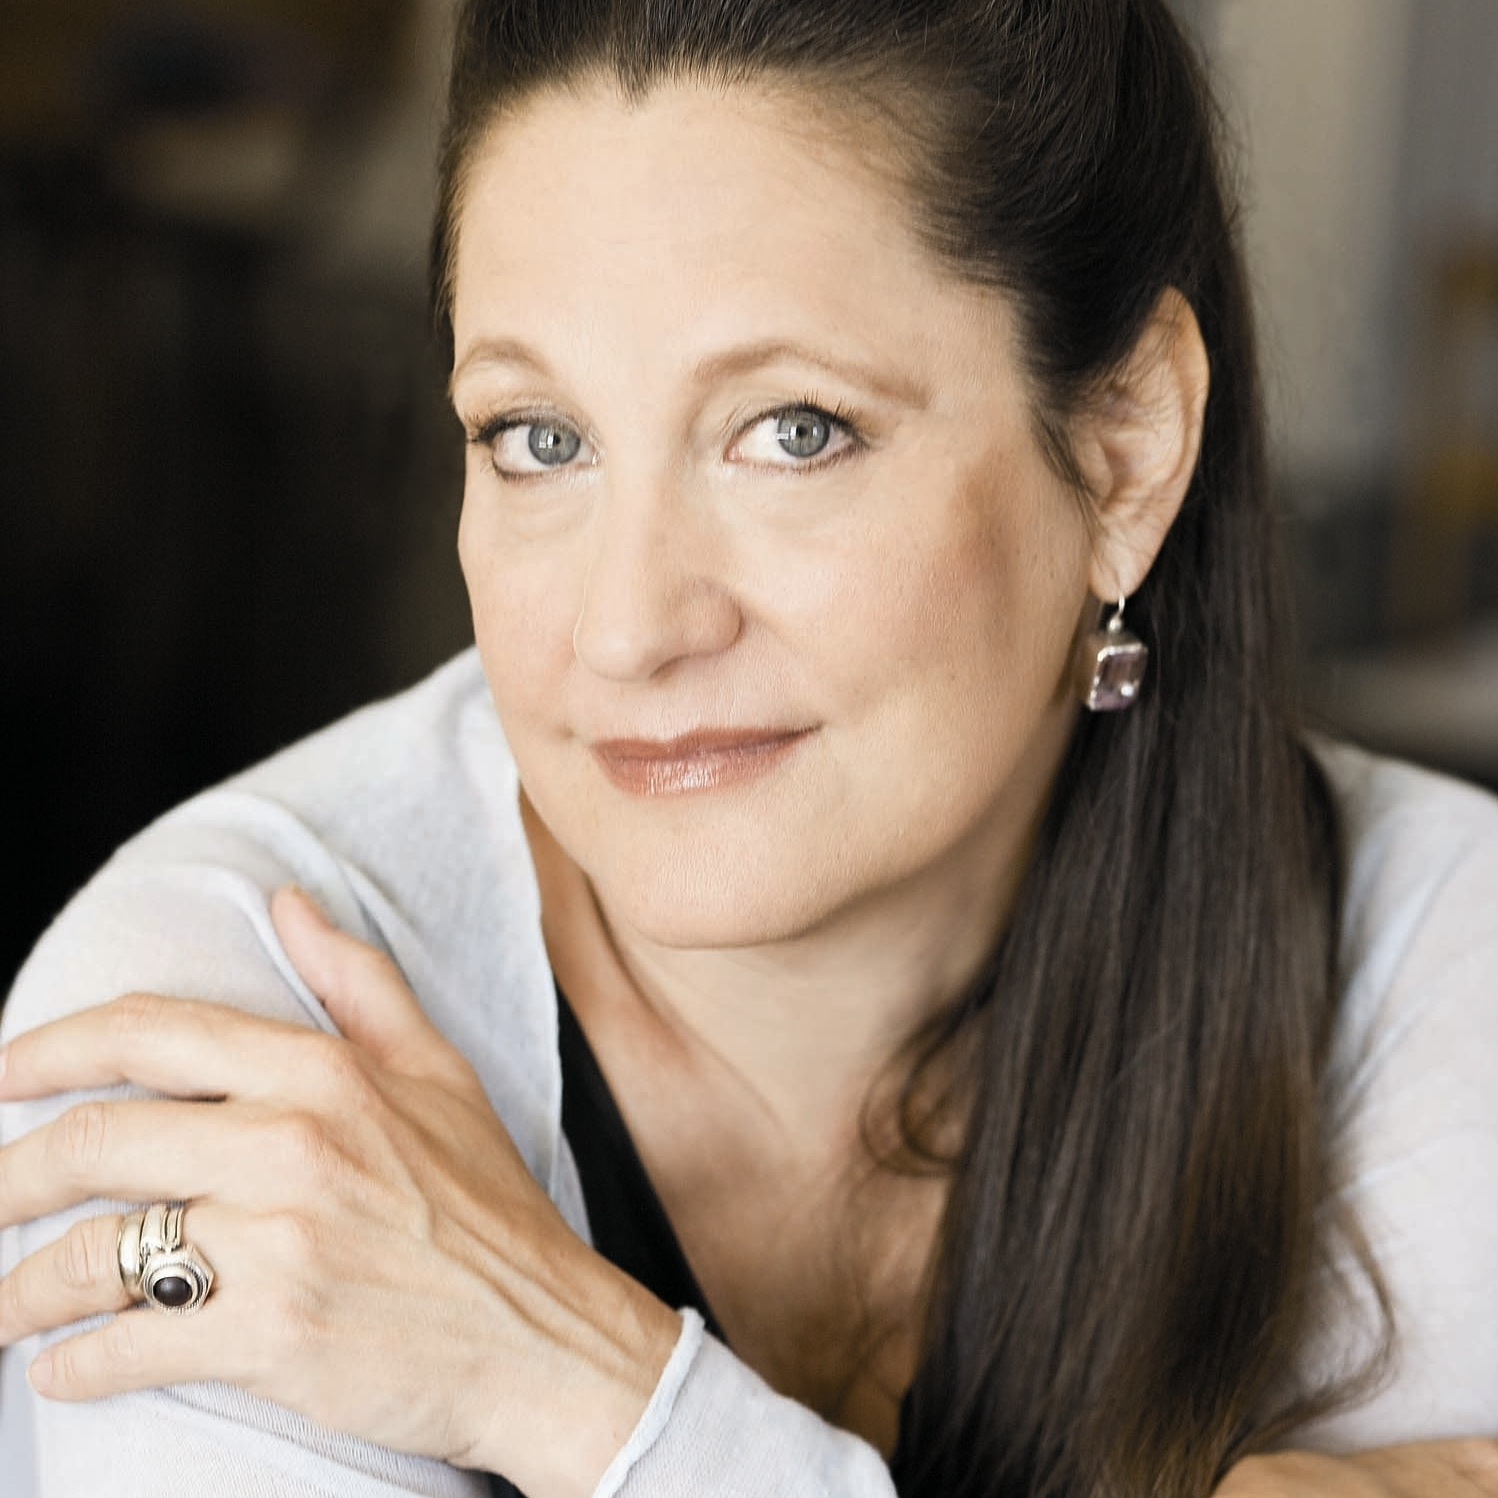 Jayne Anne Phillips' previous novel, Lark and Termite, was selected as a finalist for the National Book Award in fiction in 2009.